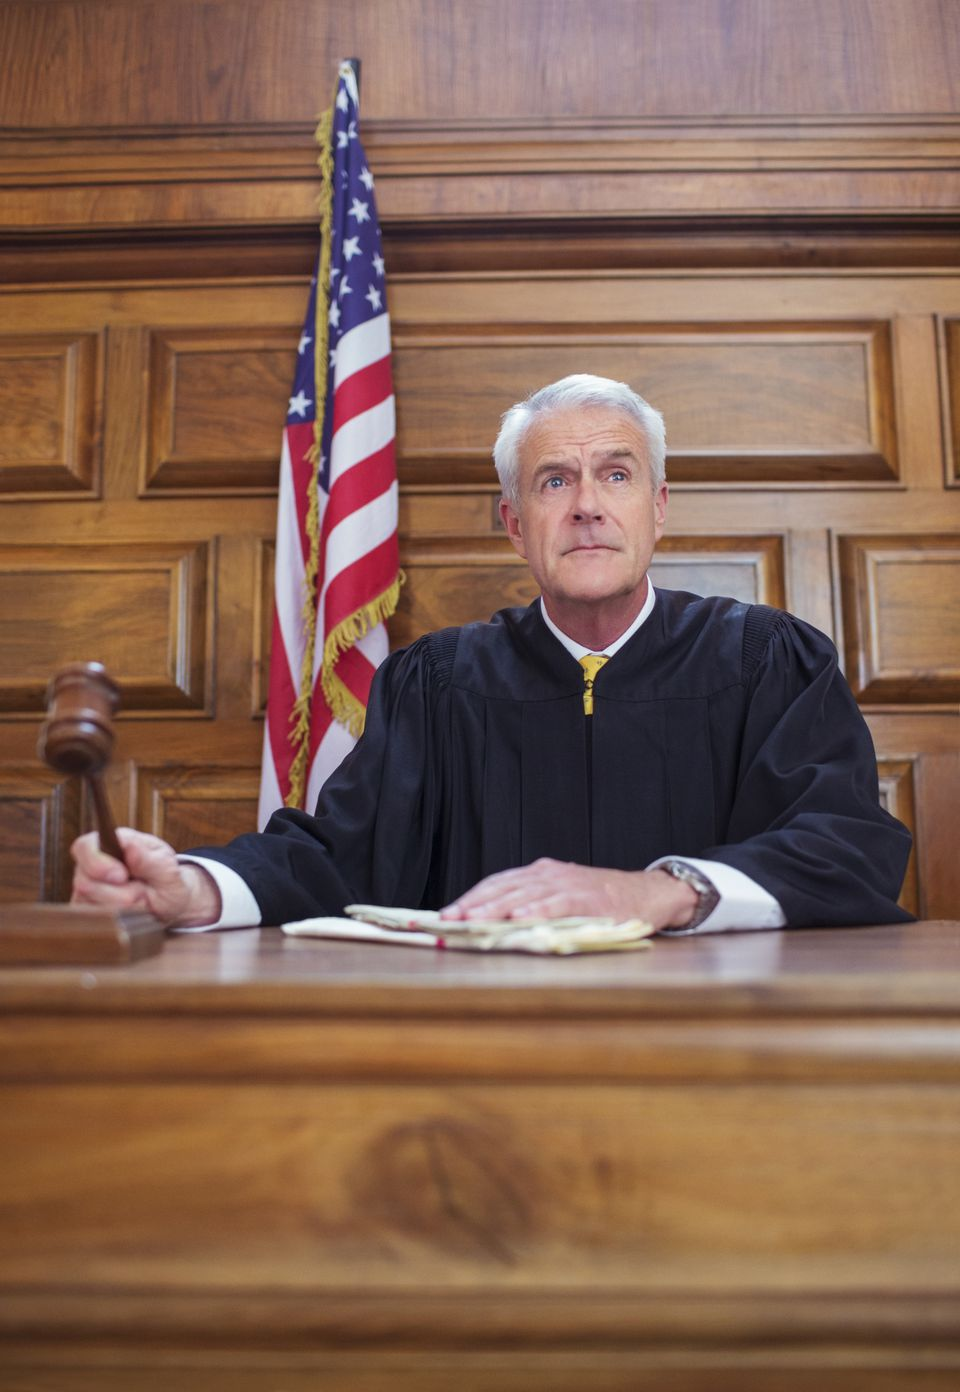 Judge issuing an ex parte order